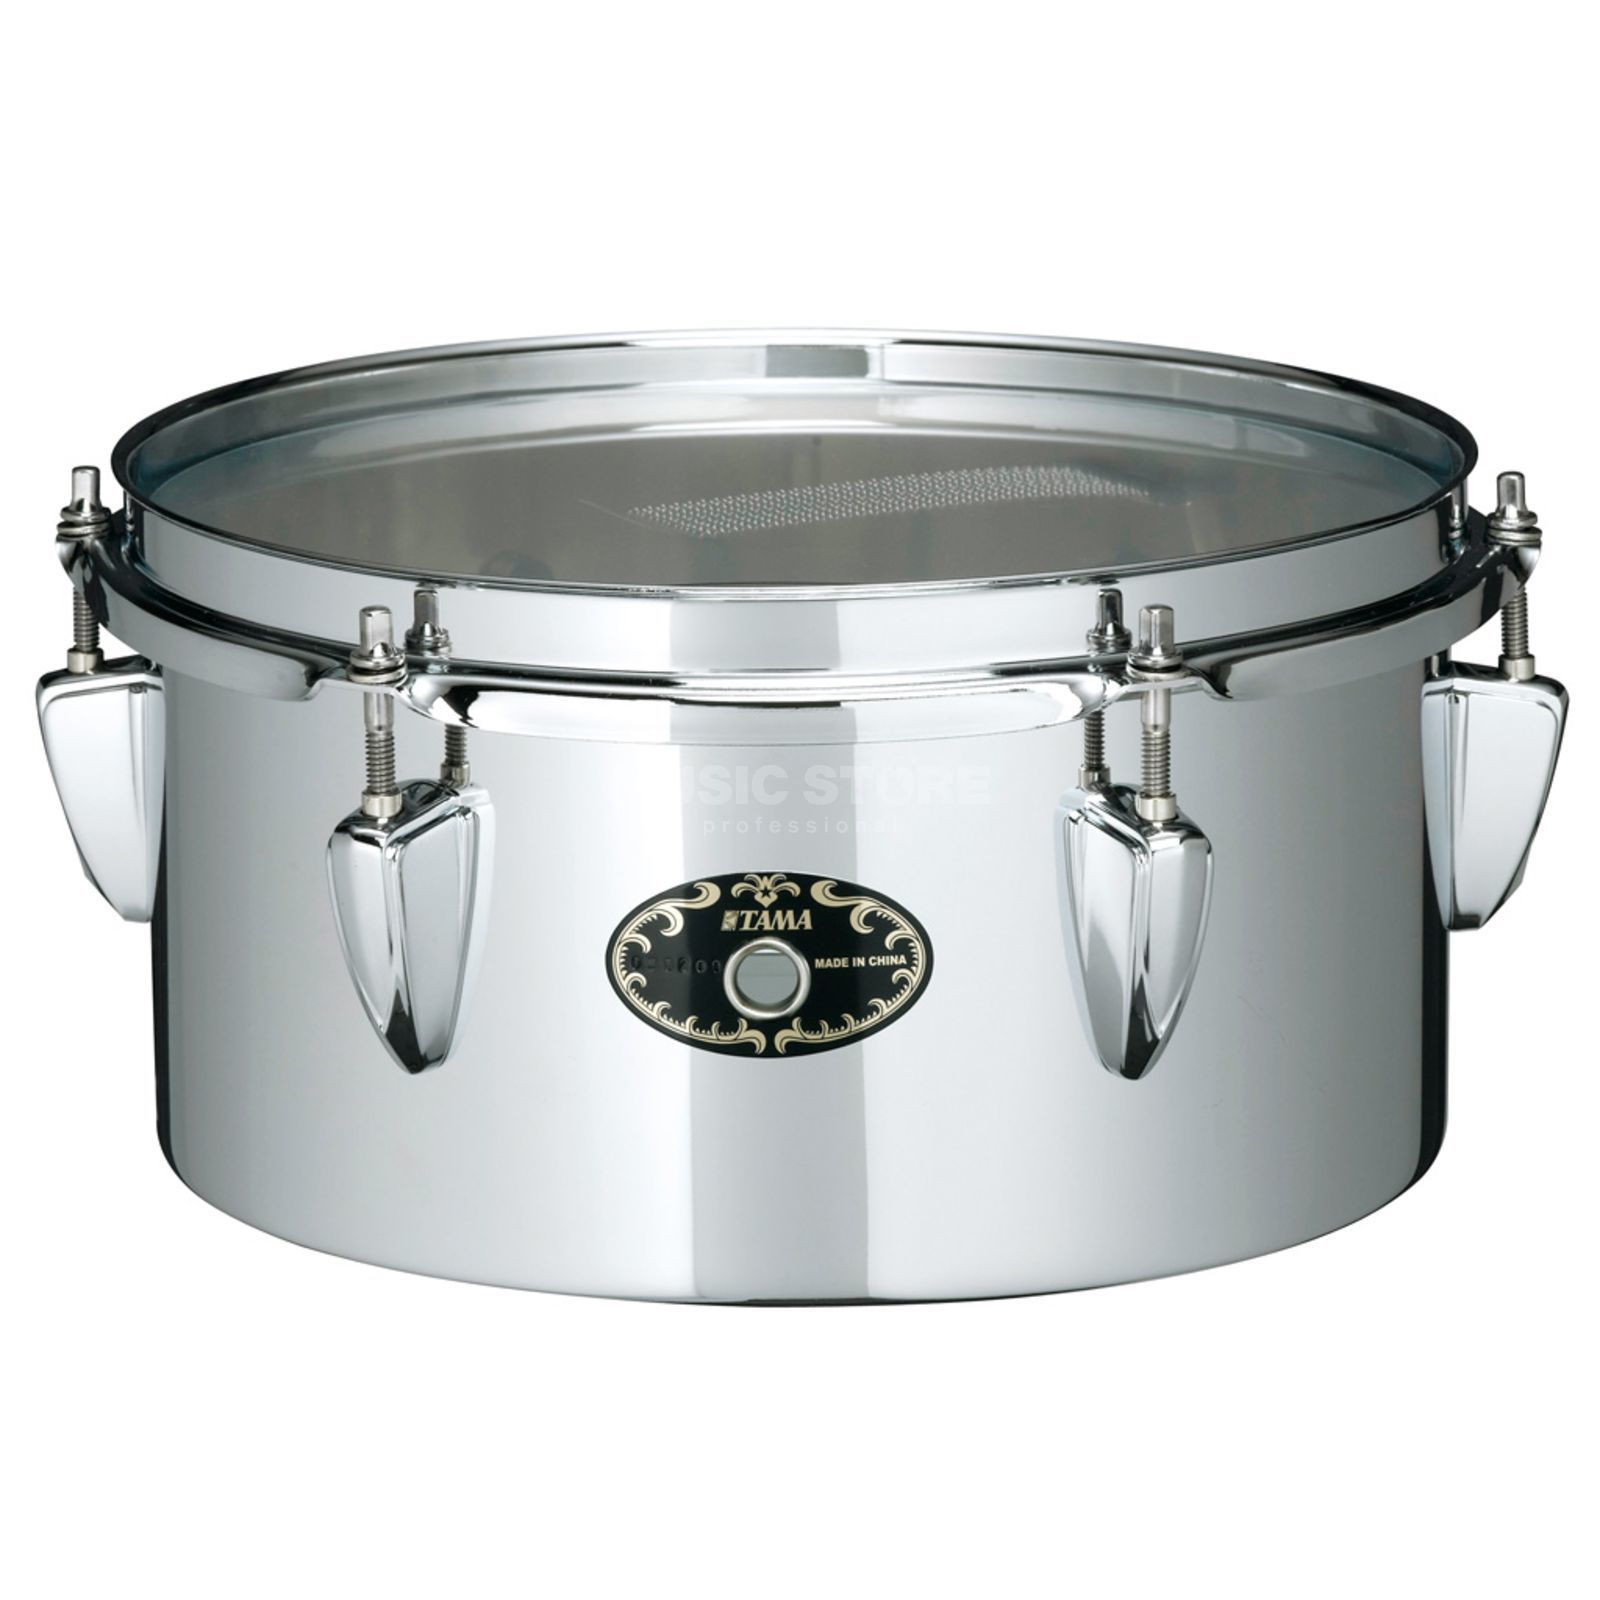 "Tama Mini-Tymp Snare STS105M, 10""x5"", incl. clamp Produktbillede"